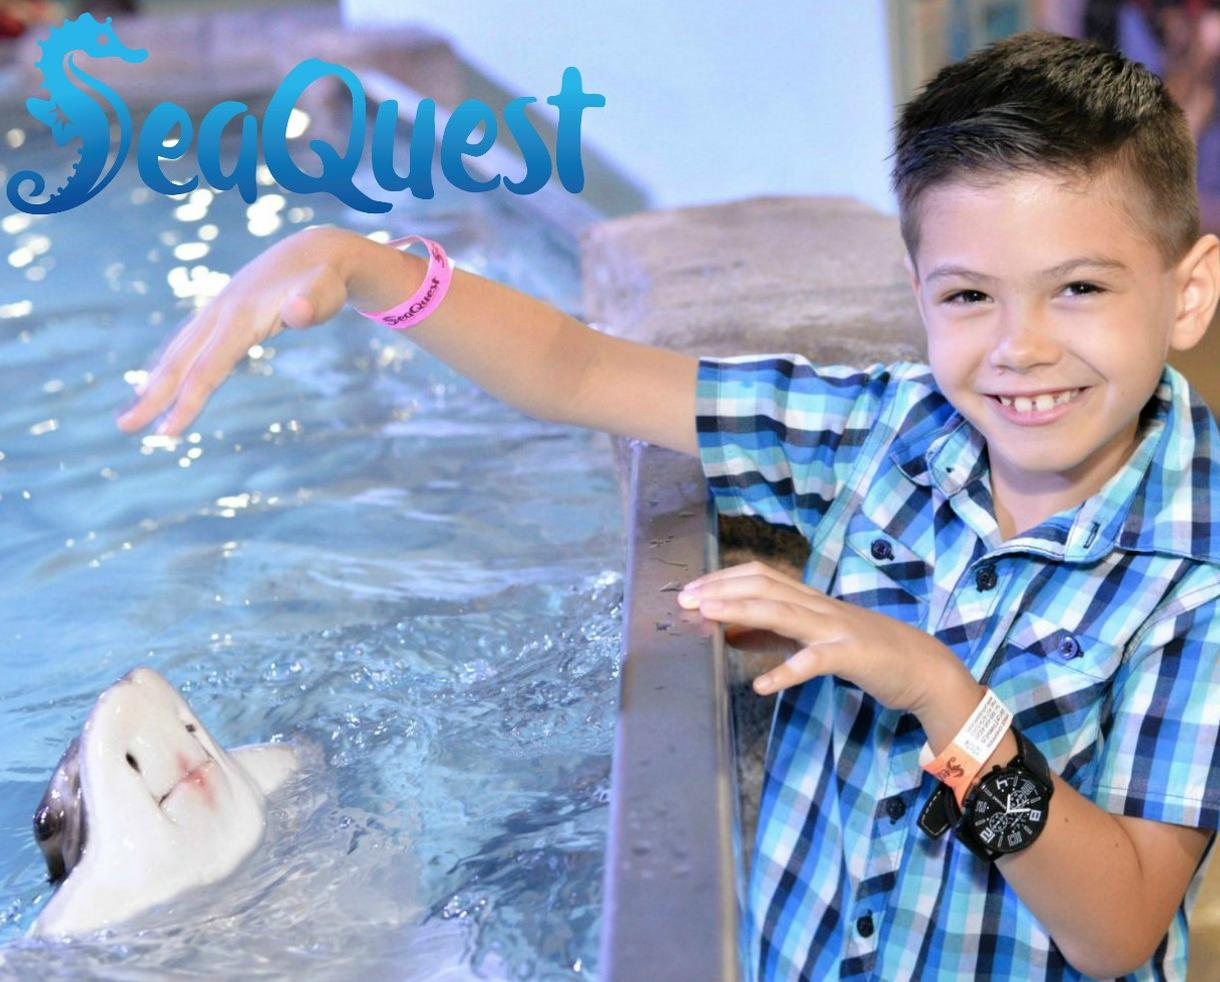 SeaQuest Ultimate Weekday Experience Package